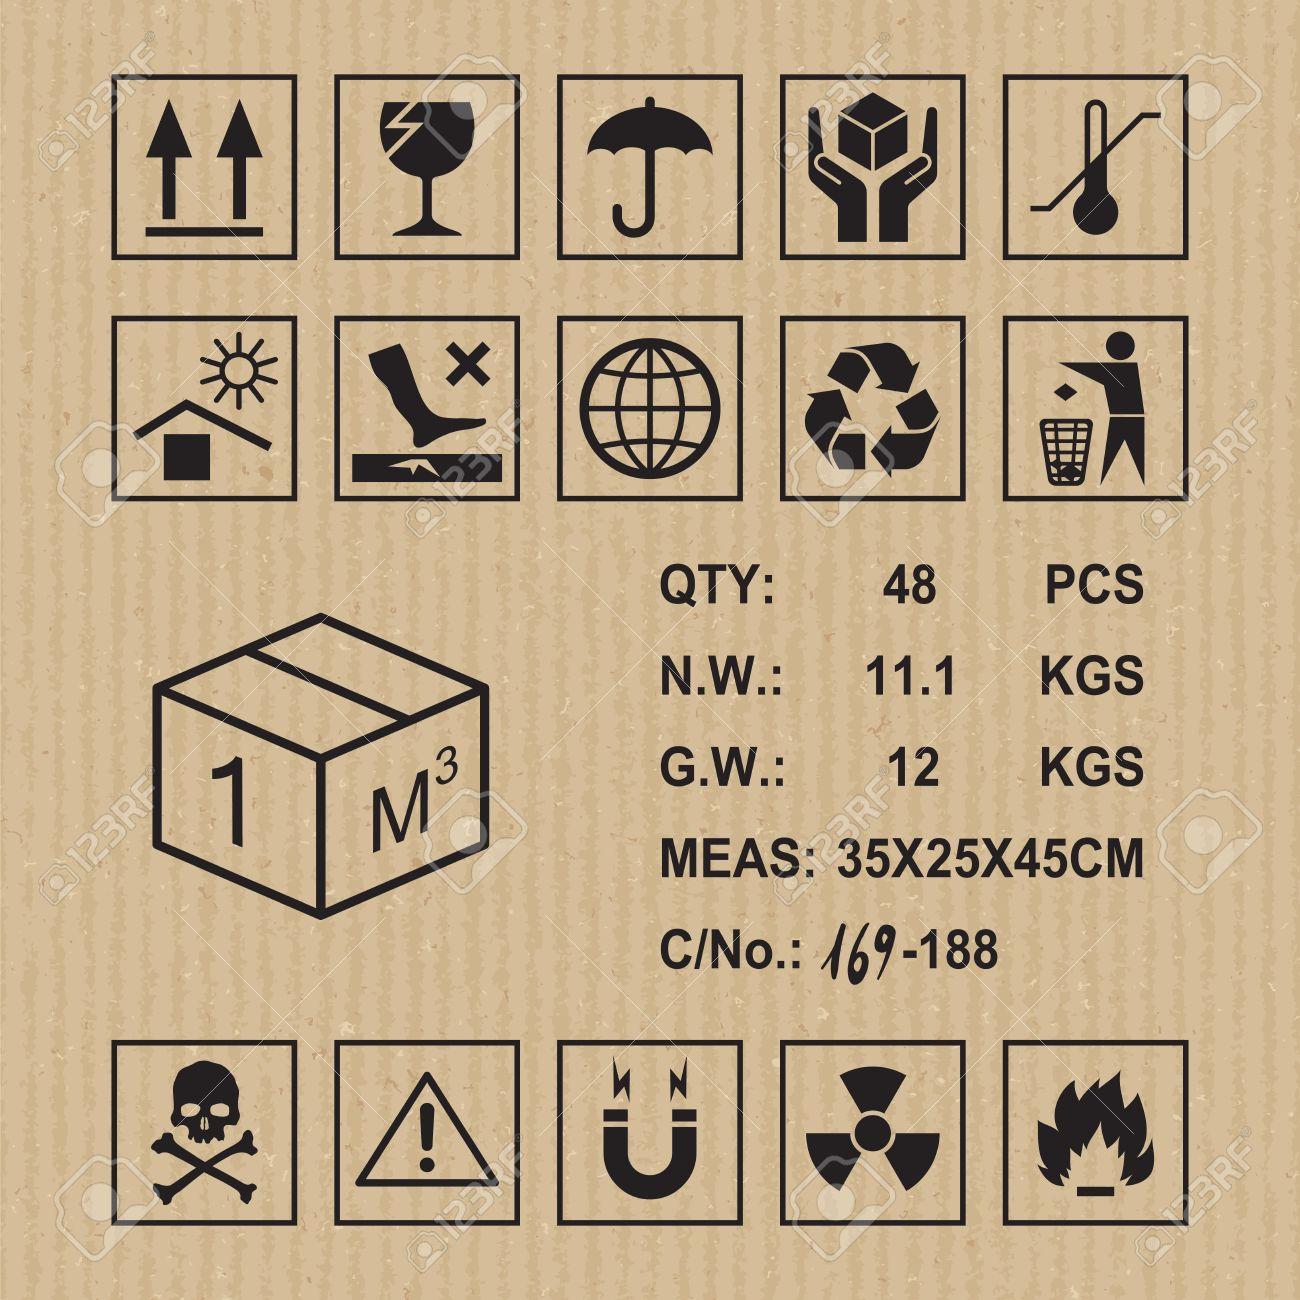 Cargo Symbols On Cardboard Texture Handling Packing And Caution